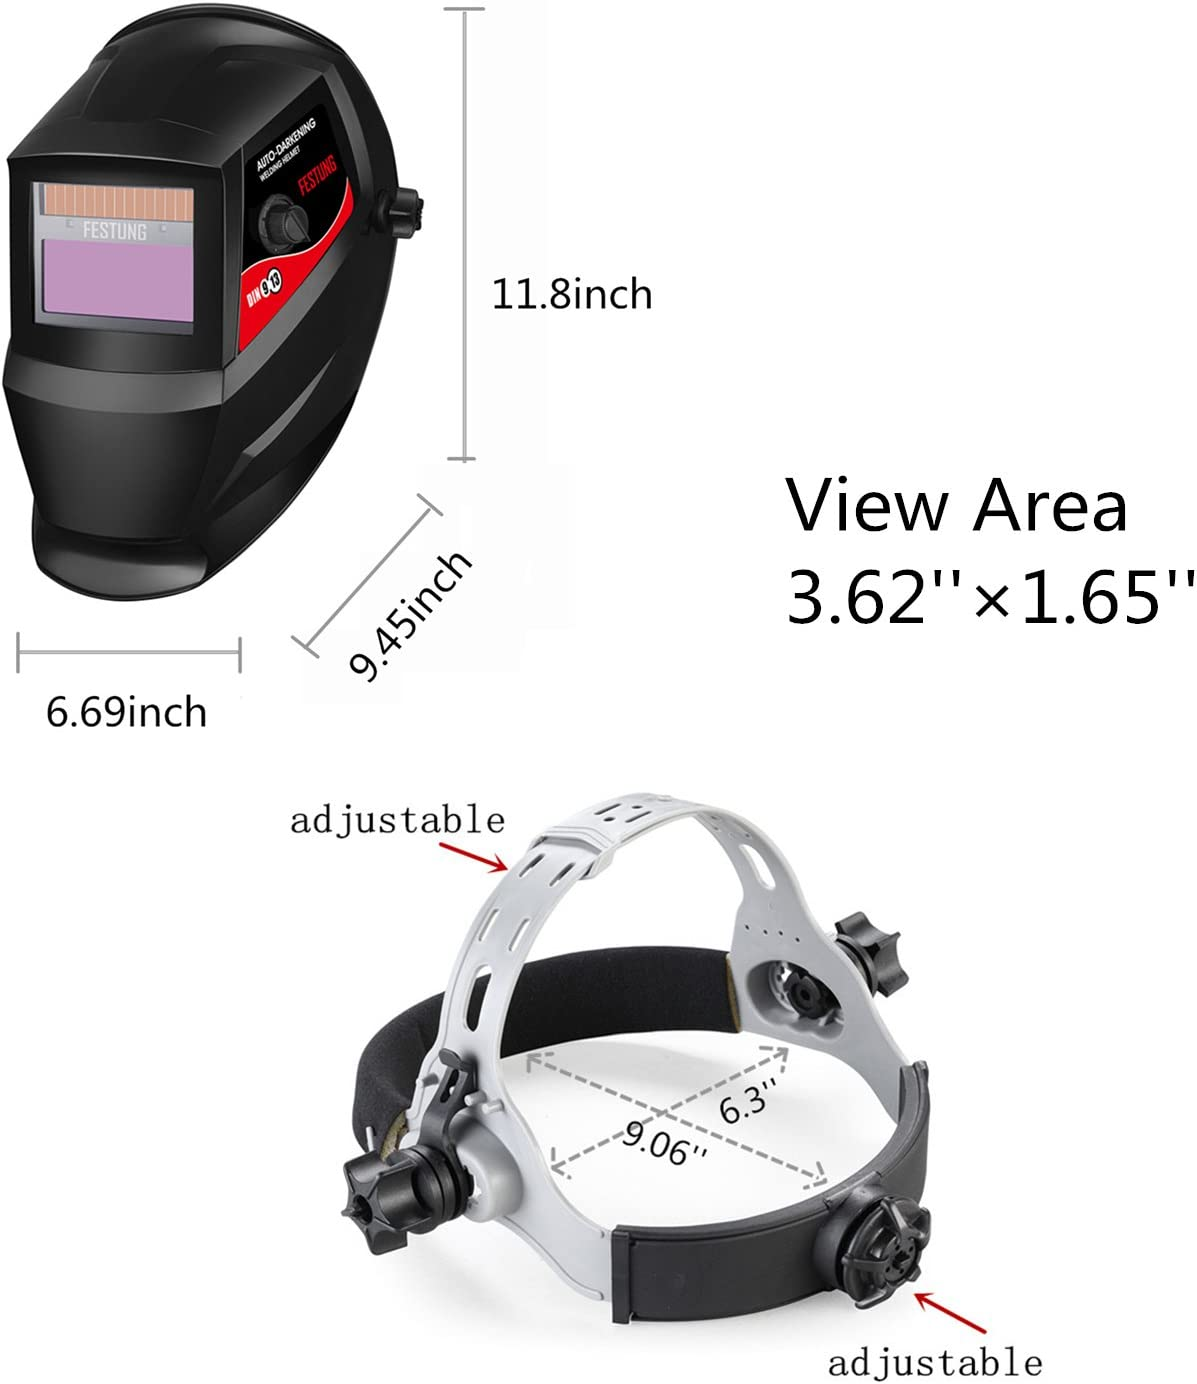 Pupzo Welding Helmet Solar Power Auto Darkening with 2 Arc Sensors /& Two Shade Ranges 5-8//9-13 with Grinding Feature Extra lens covers Good for TIG MIG MMA Plasma Batman